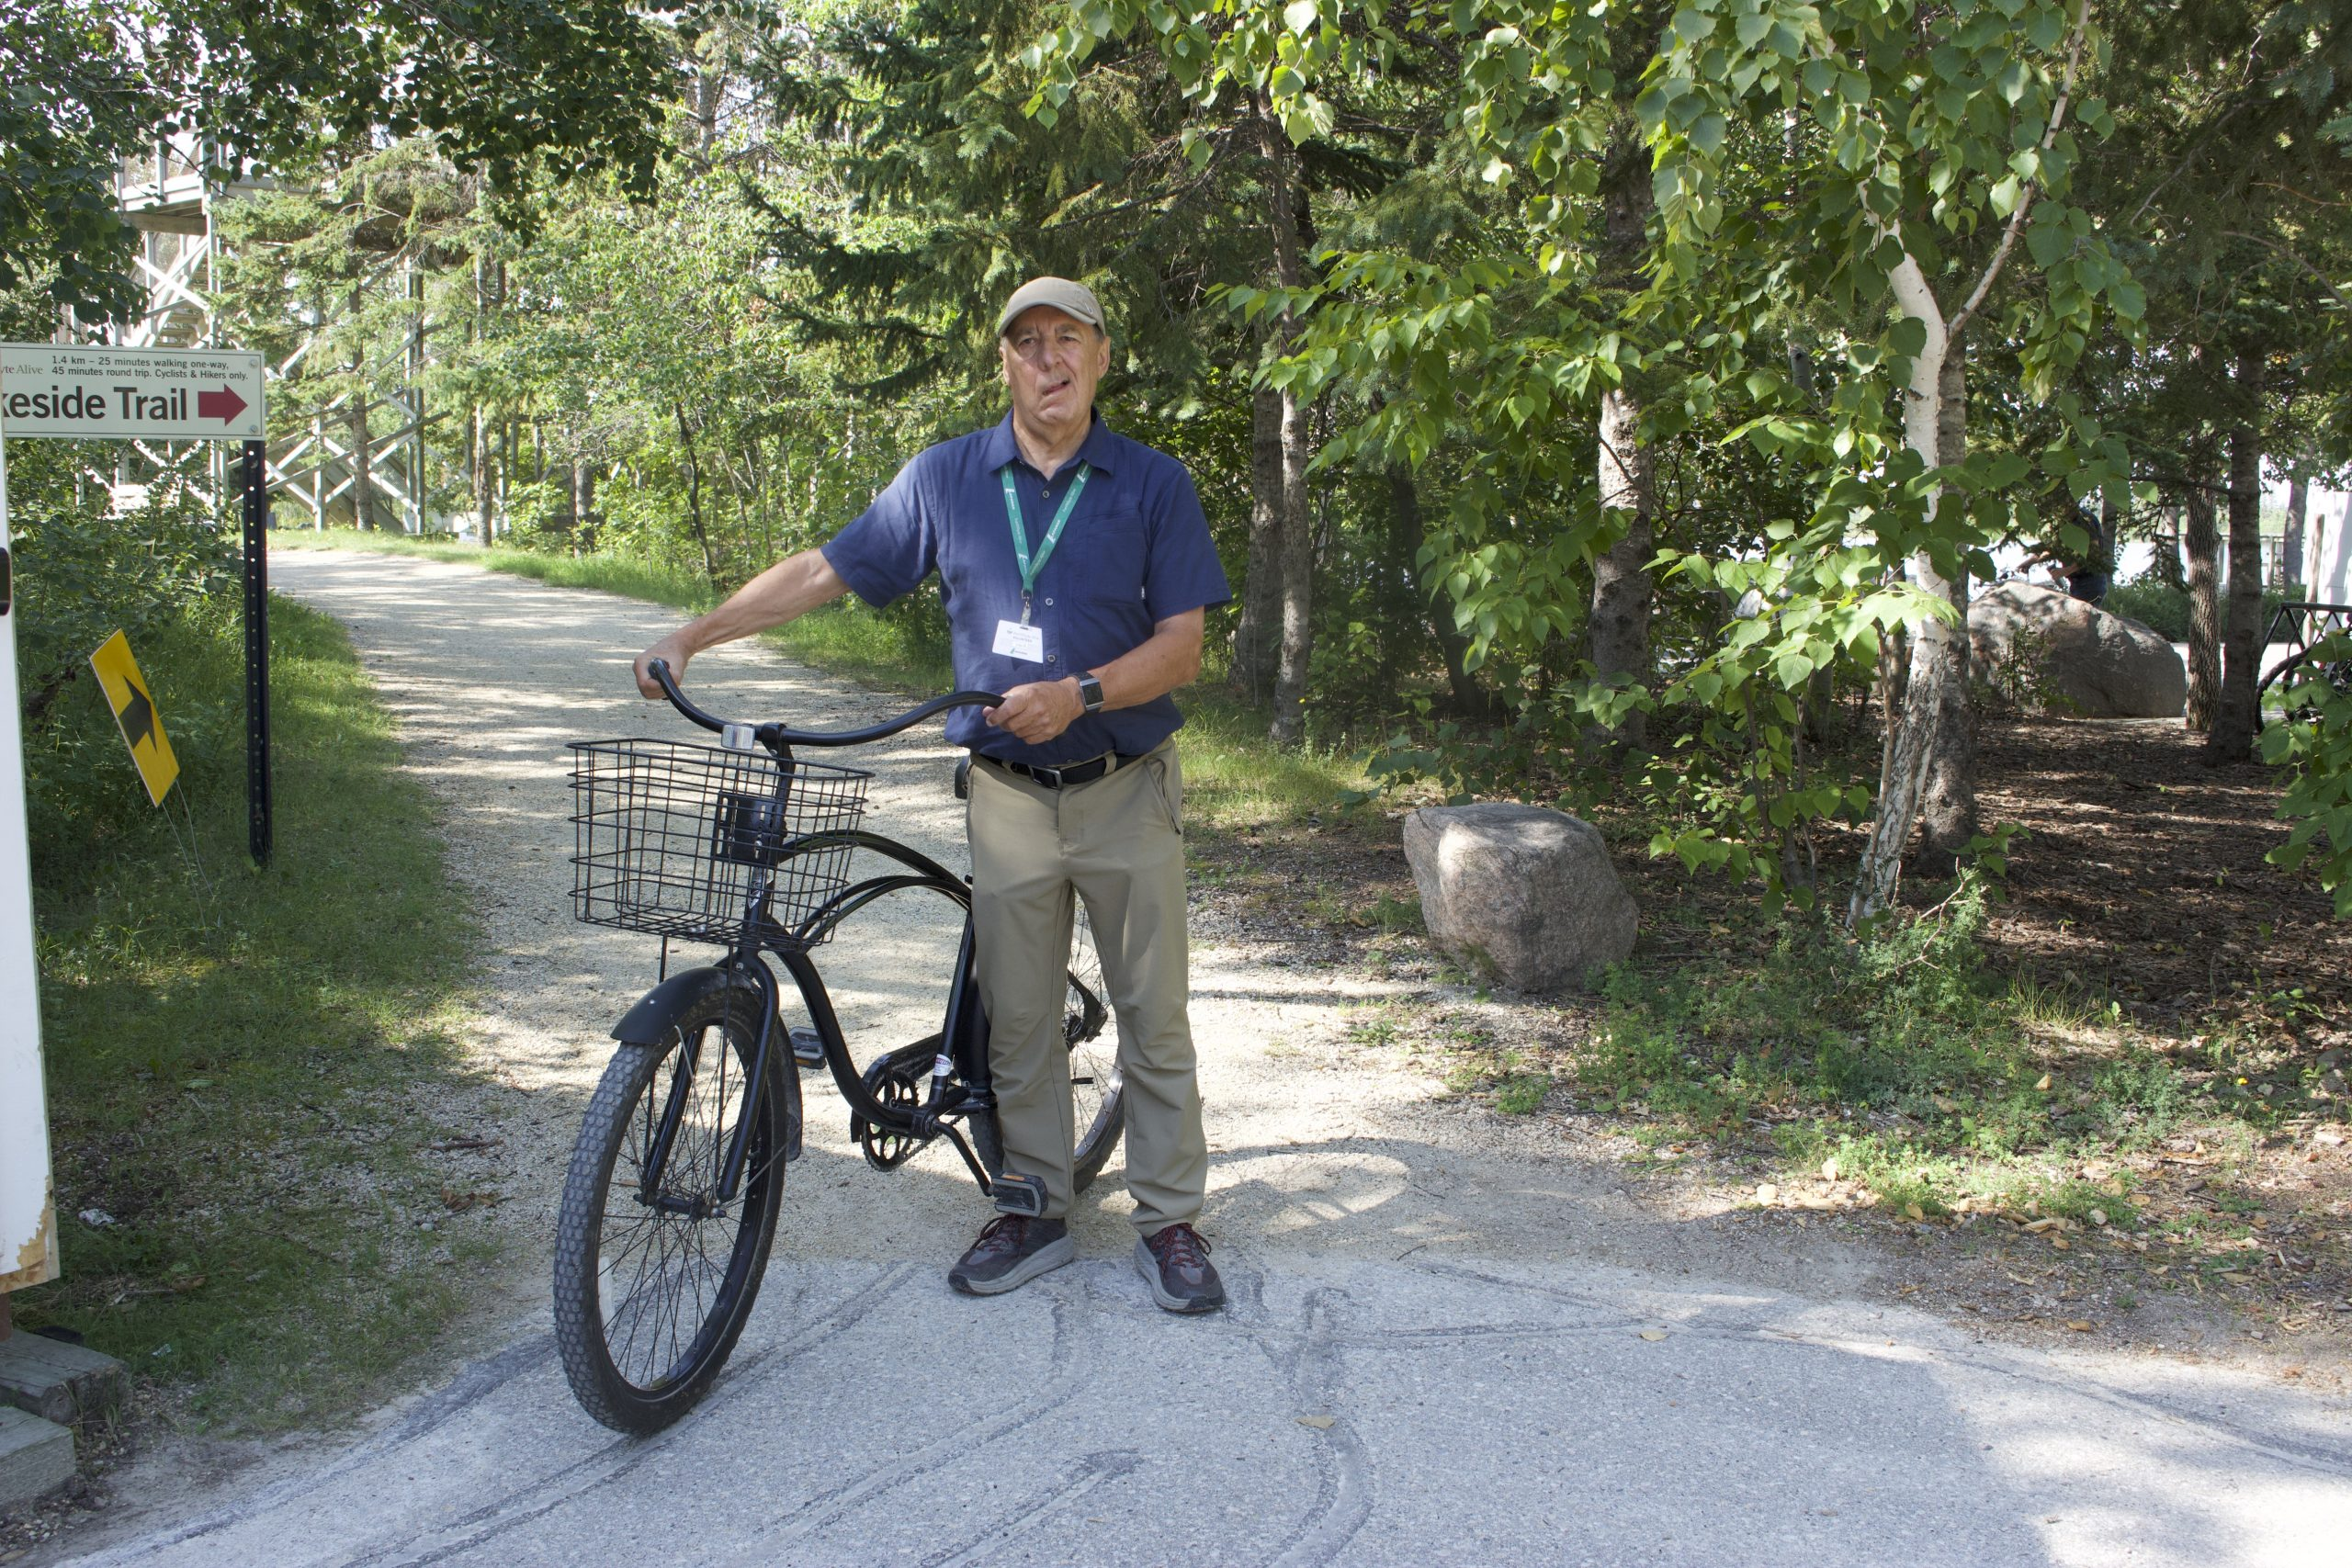 Lou stands beside a bike on a trail surrounded by green trees.